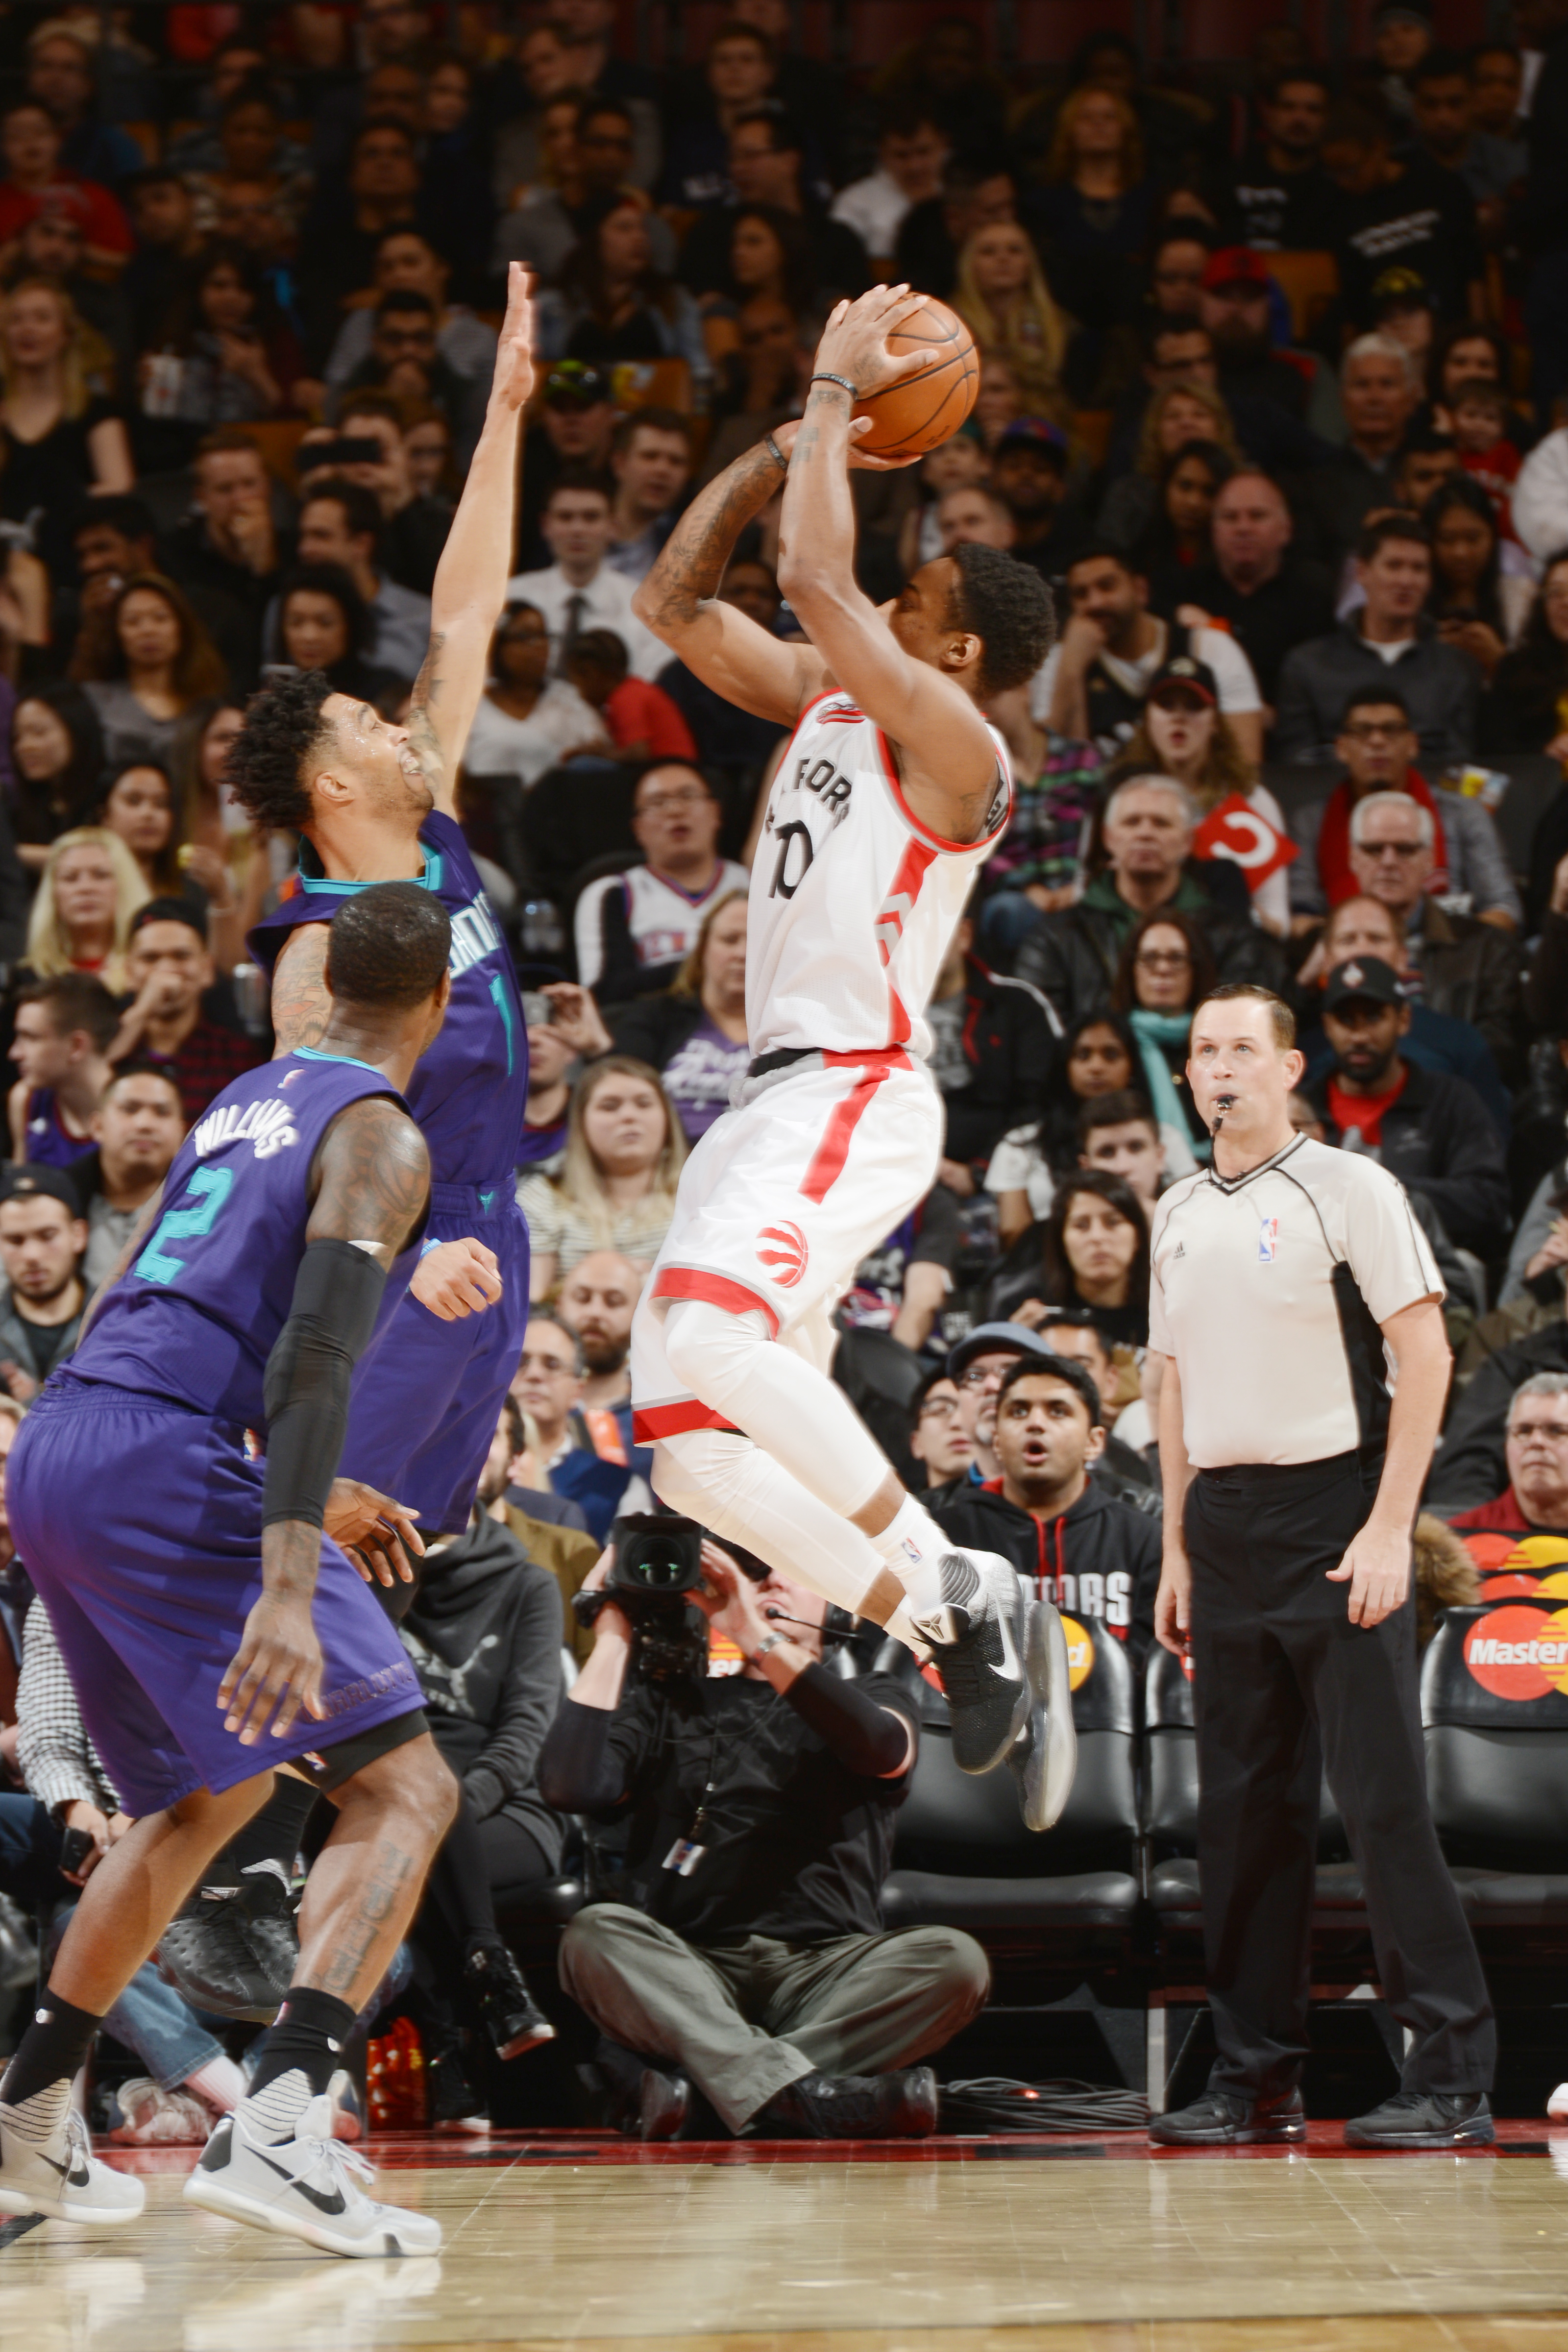 TORONTO, CAN  - APRIL 5: DeMar DeRozan #10 of the Toronto Raptors shoots against the Charlotte Hornets  during the game on April 5, 2016 at Air Canada Centre in Toronto, Canada. (Photo by Ron Turenne/NBAE via Getty Images)